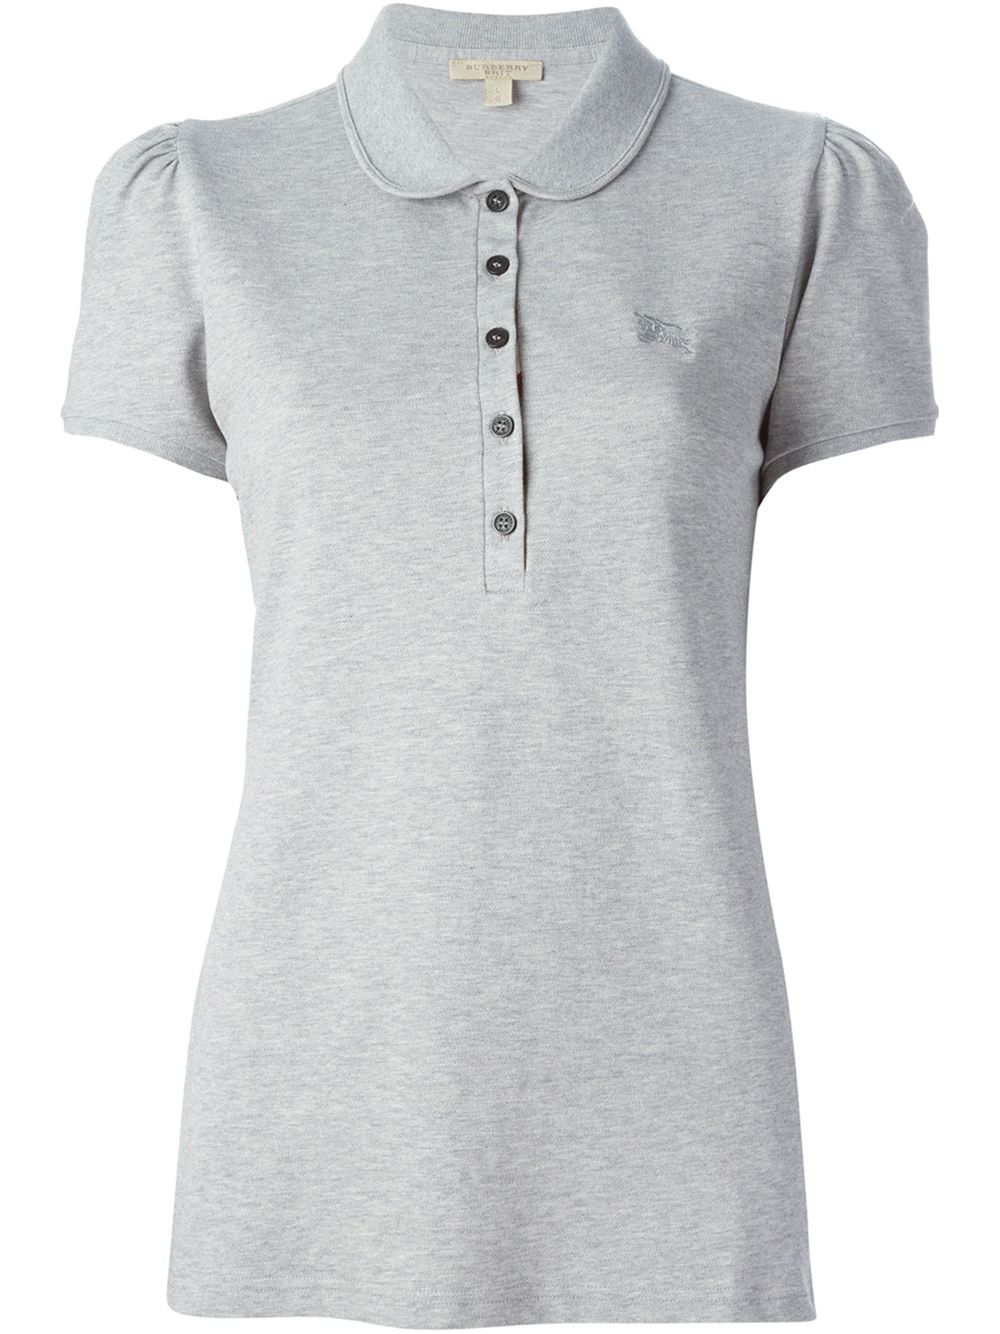 Burberry Brit Peter Pan Collar Polo Shirt In Gray Grey